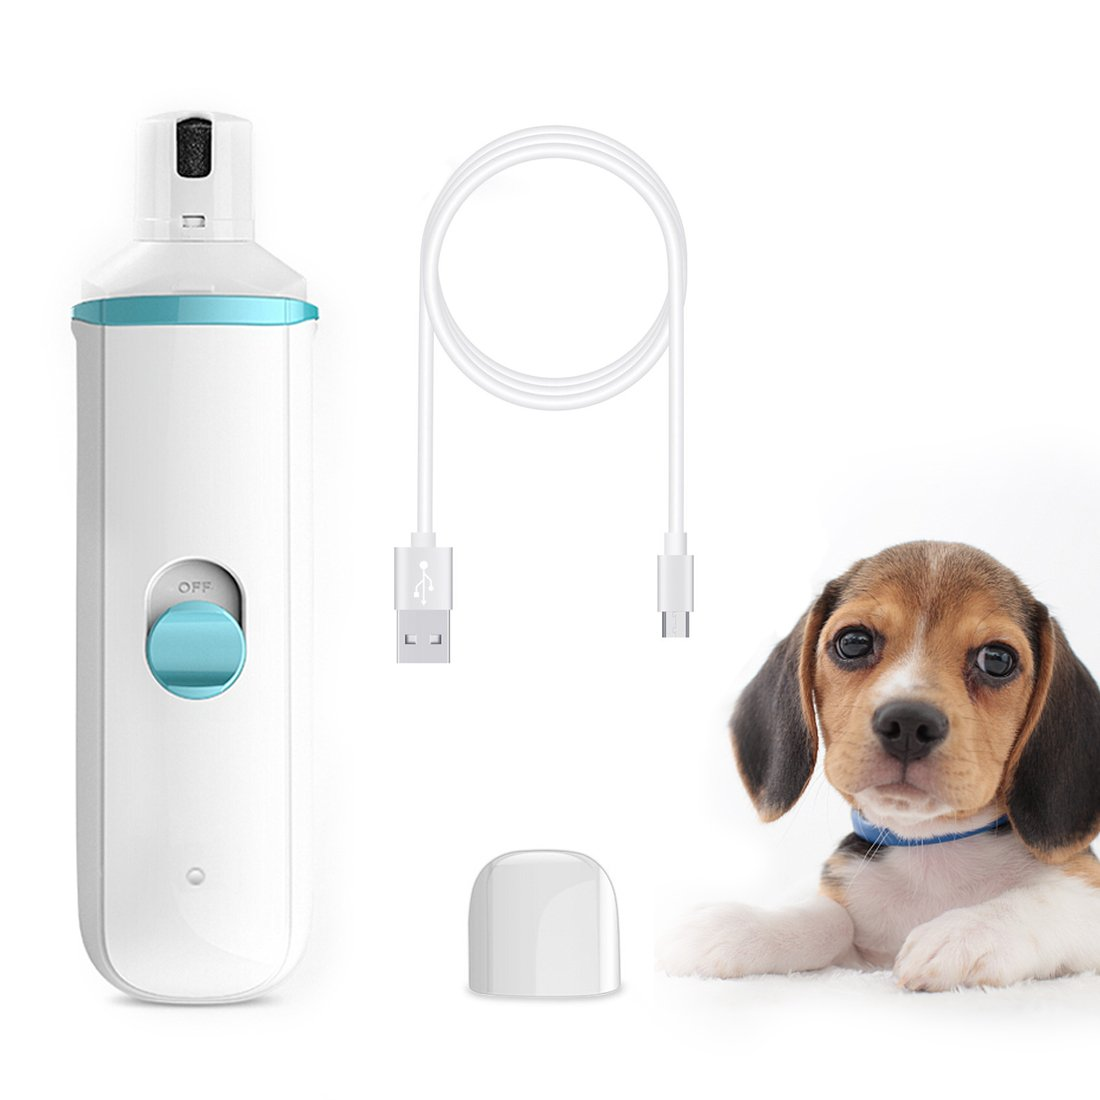 DIGDAN Dog Nail Grinder, Electric Pet Nail Grinder with USB Fast Charging for Gentle Painless Paws Grooming, Portable Low Noise Nail Clippers for Dogs, Cats and Other Animal Paws by DIGDAN (Image #2)